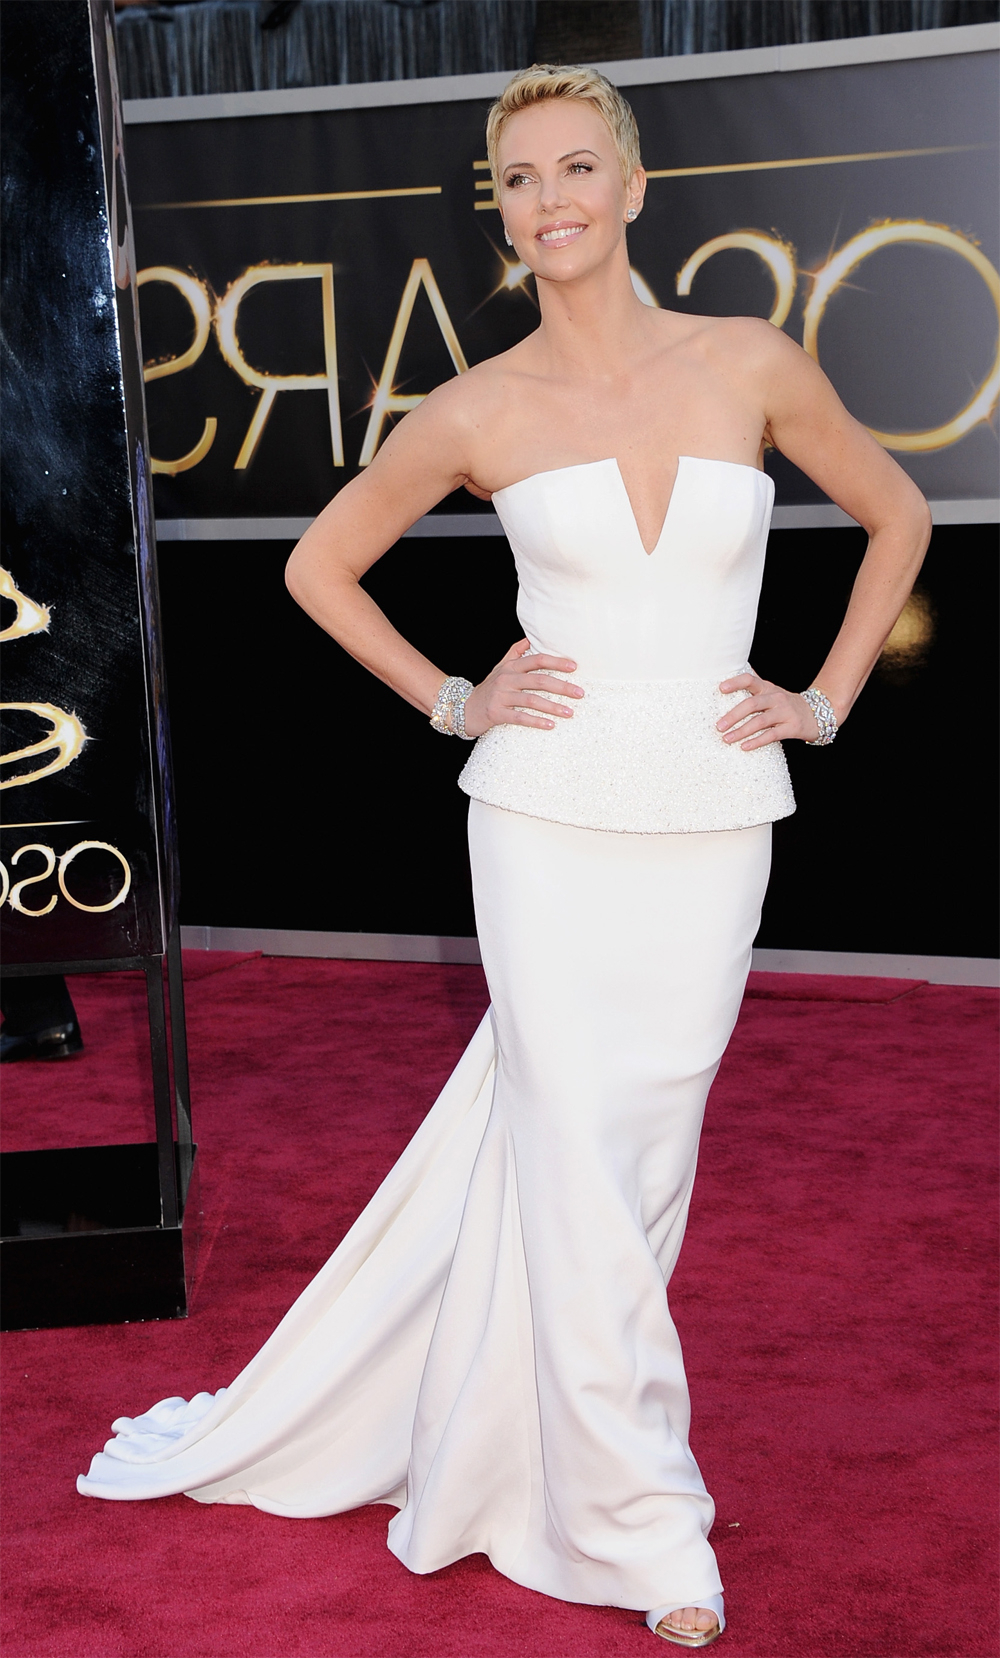 The Oscars: Charlize Theron's Androgynous, Short Hair – Career Pertaining To Charlize Theron Short Haircuts (View 21 of 25)